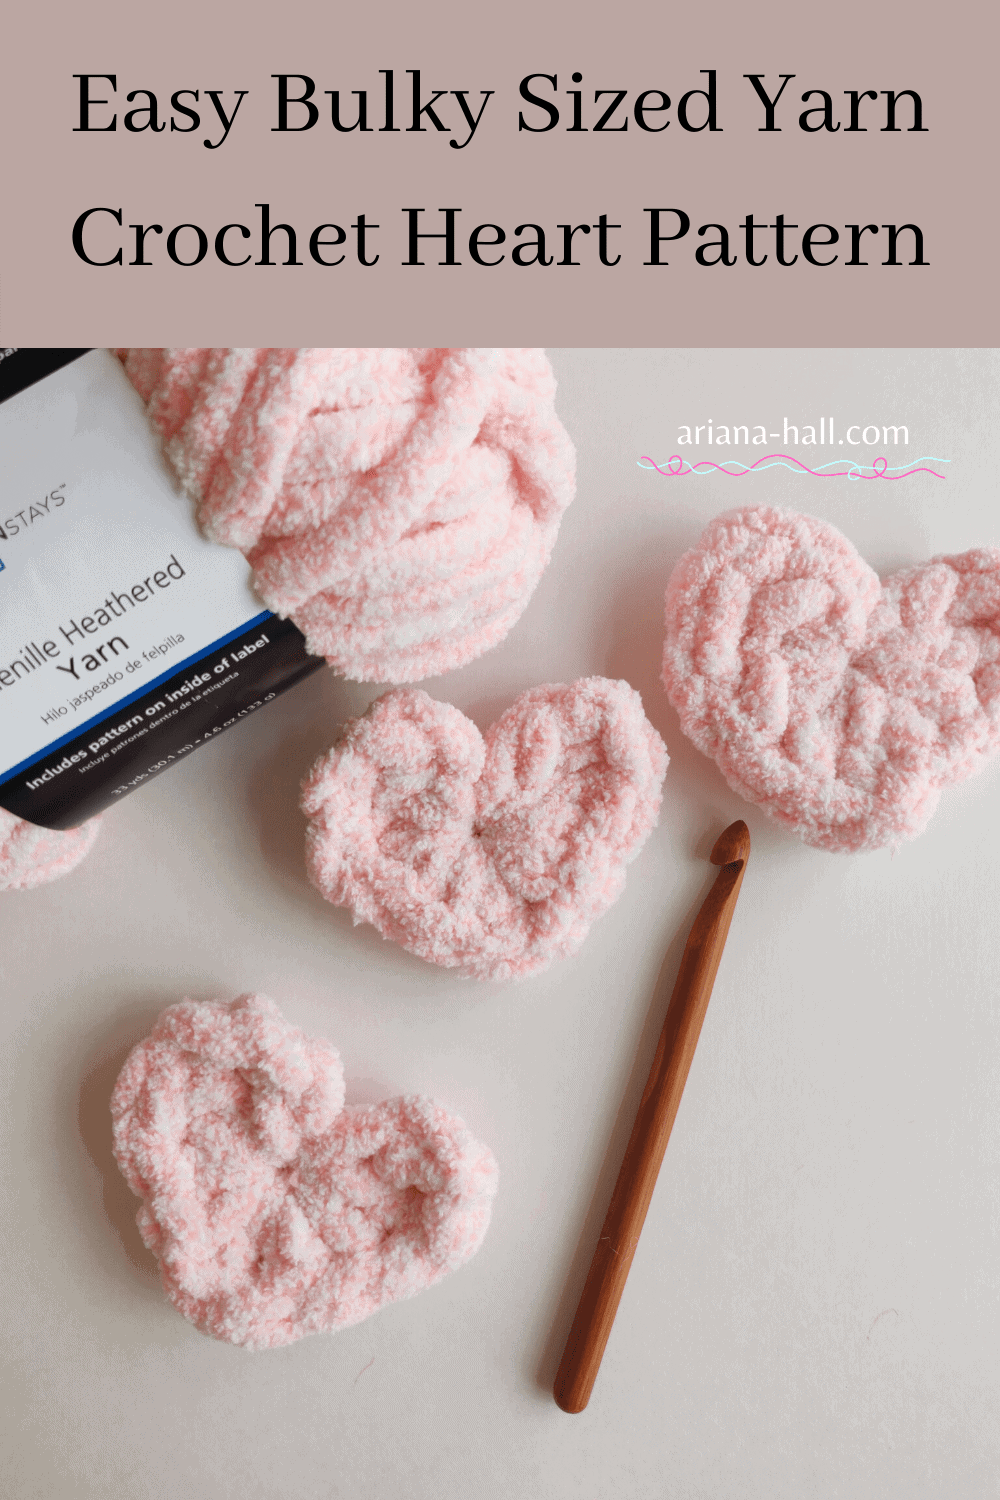 Three pink crochet hearts with bulky yarn and wooden crochet hook.